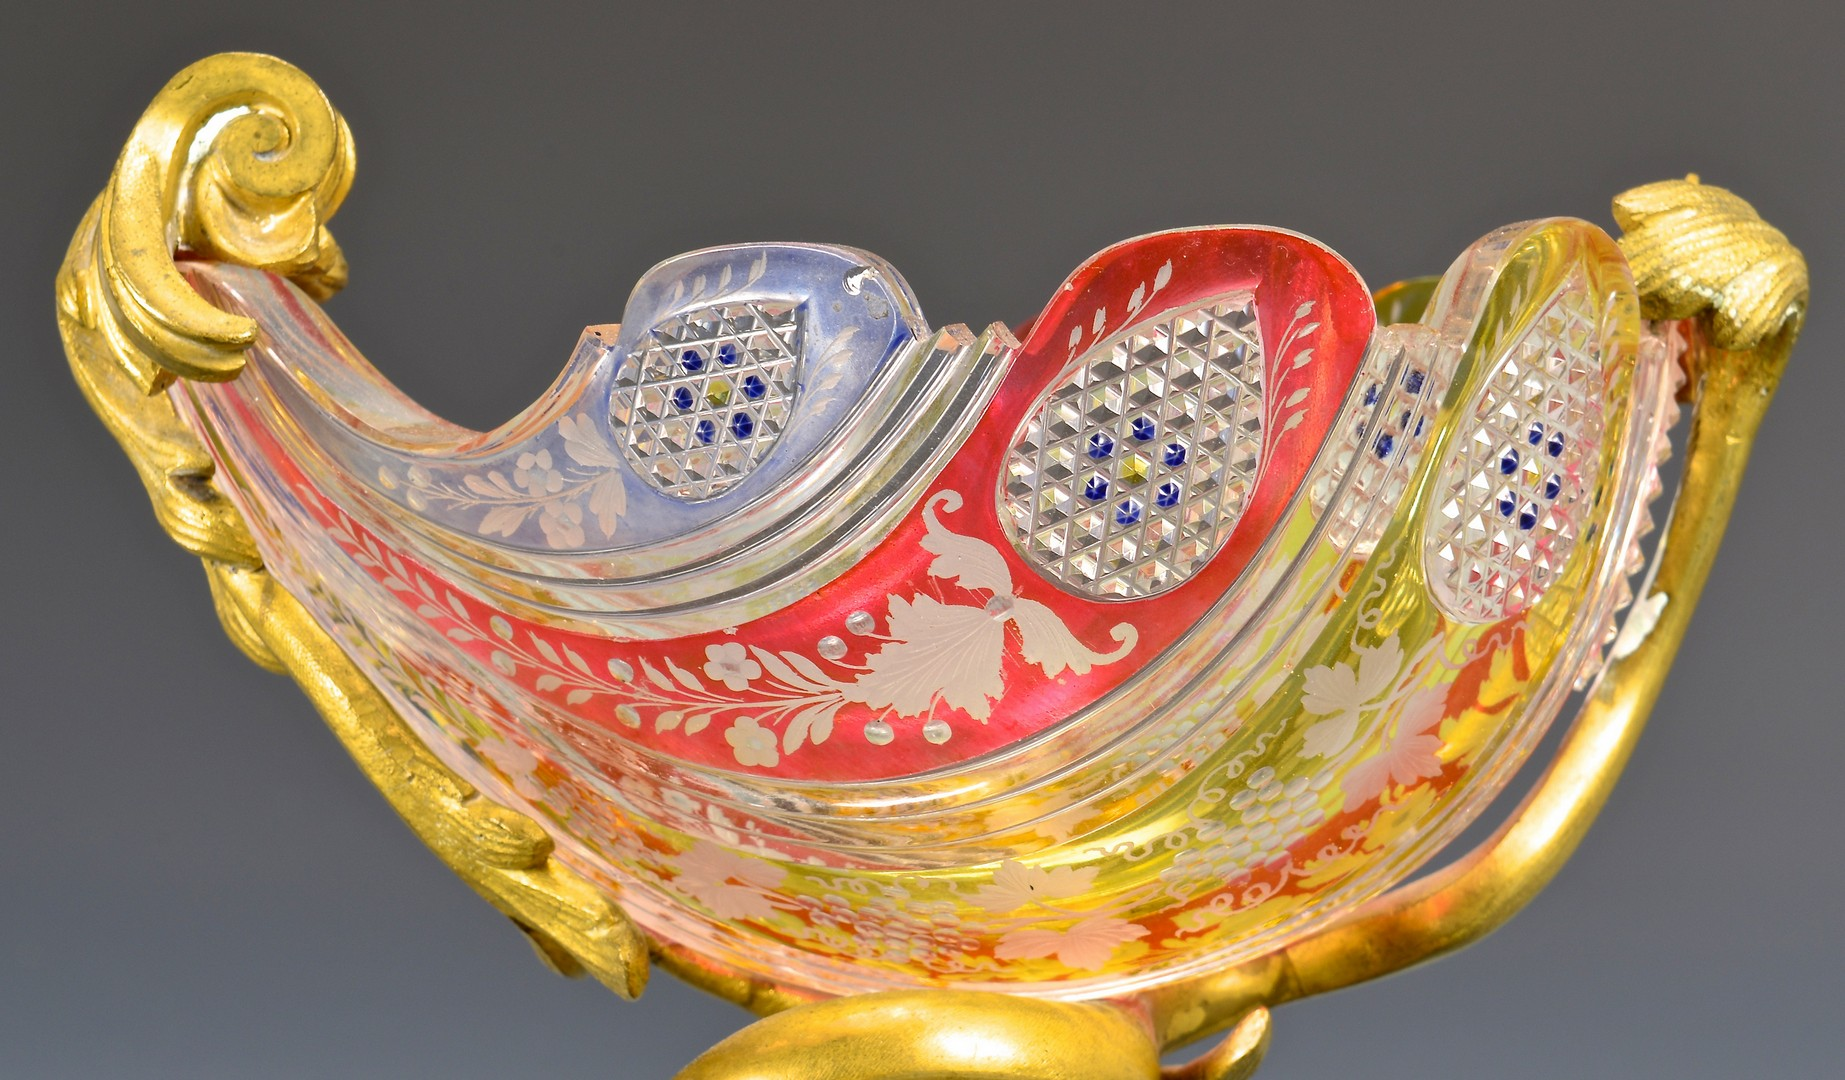 Lot 86: 19th c. Continental Decorative Items